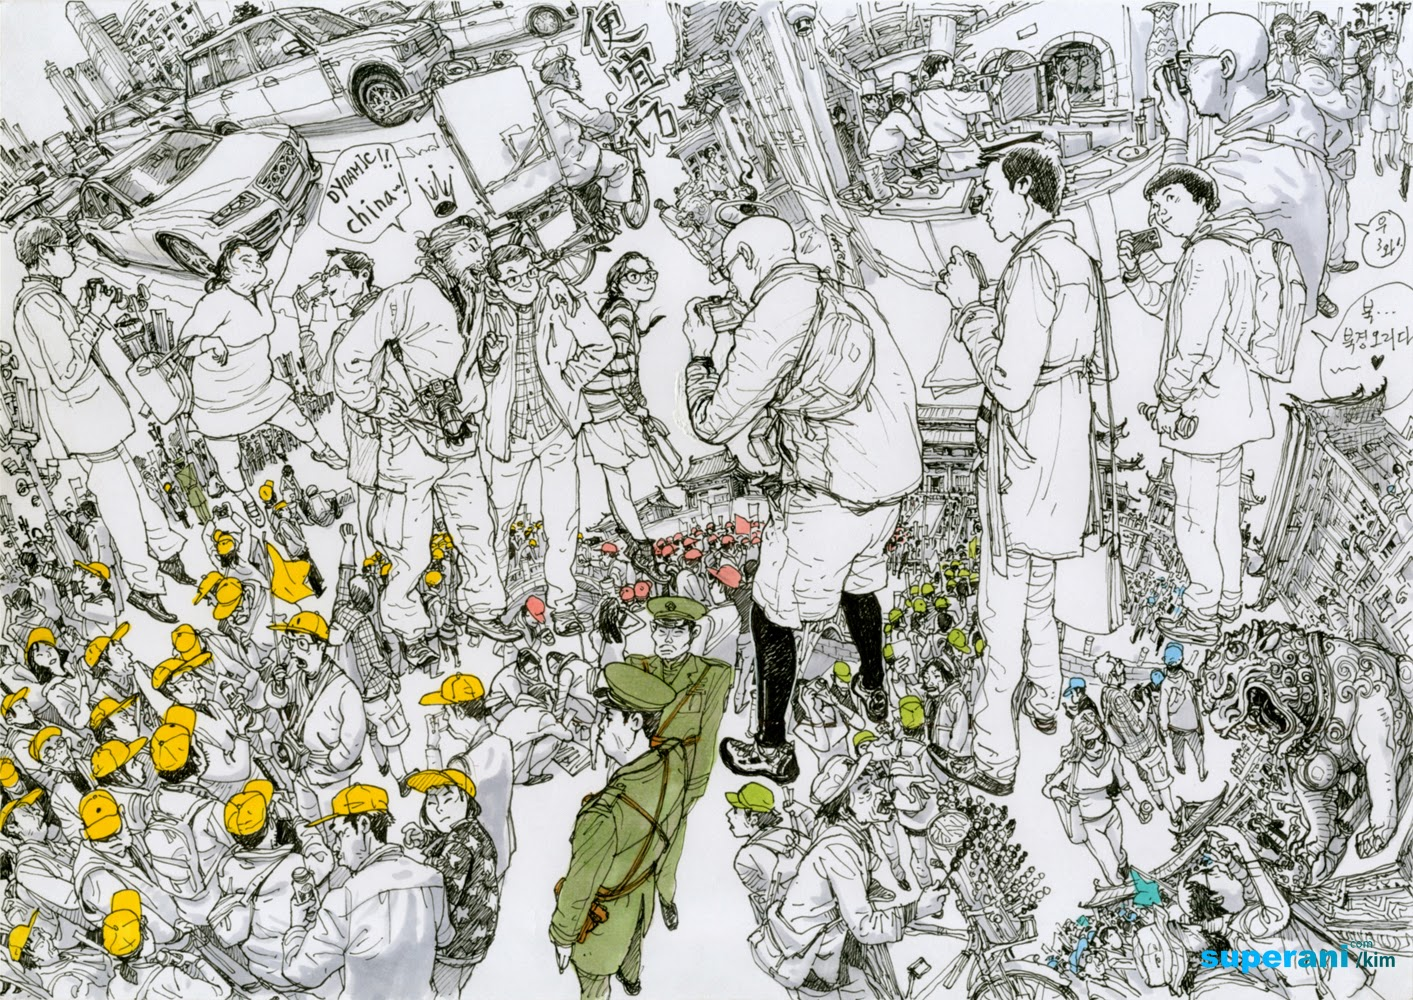 09-Kim-Jung-Gi-Fluid-Drawings-and-Compositions-www-designstack-co